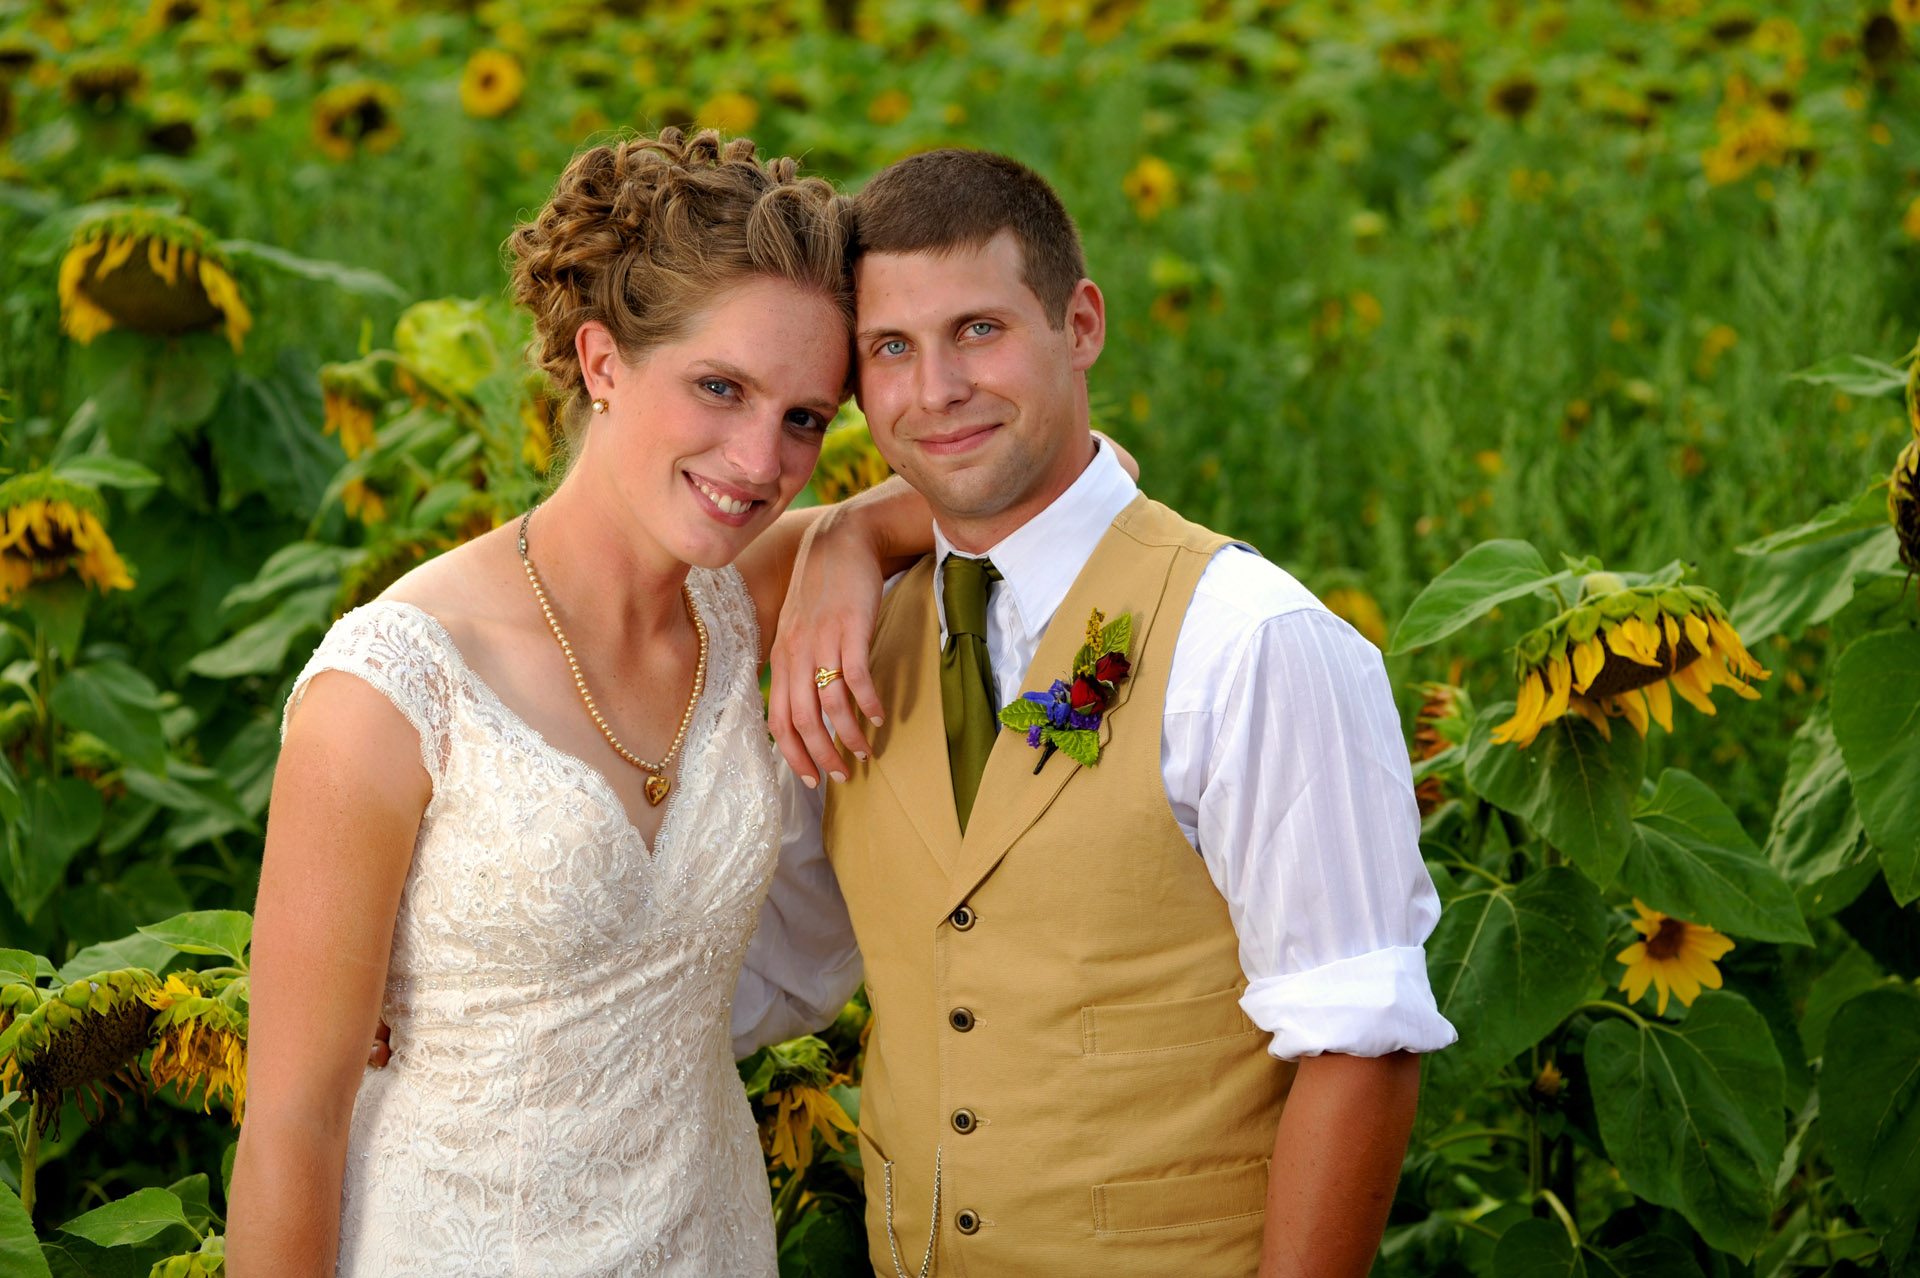 Michigan country wedding wedding photographer pose in amongst sunflowers at his family's farm at this Michigan country wedding.